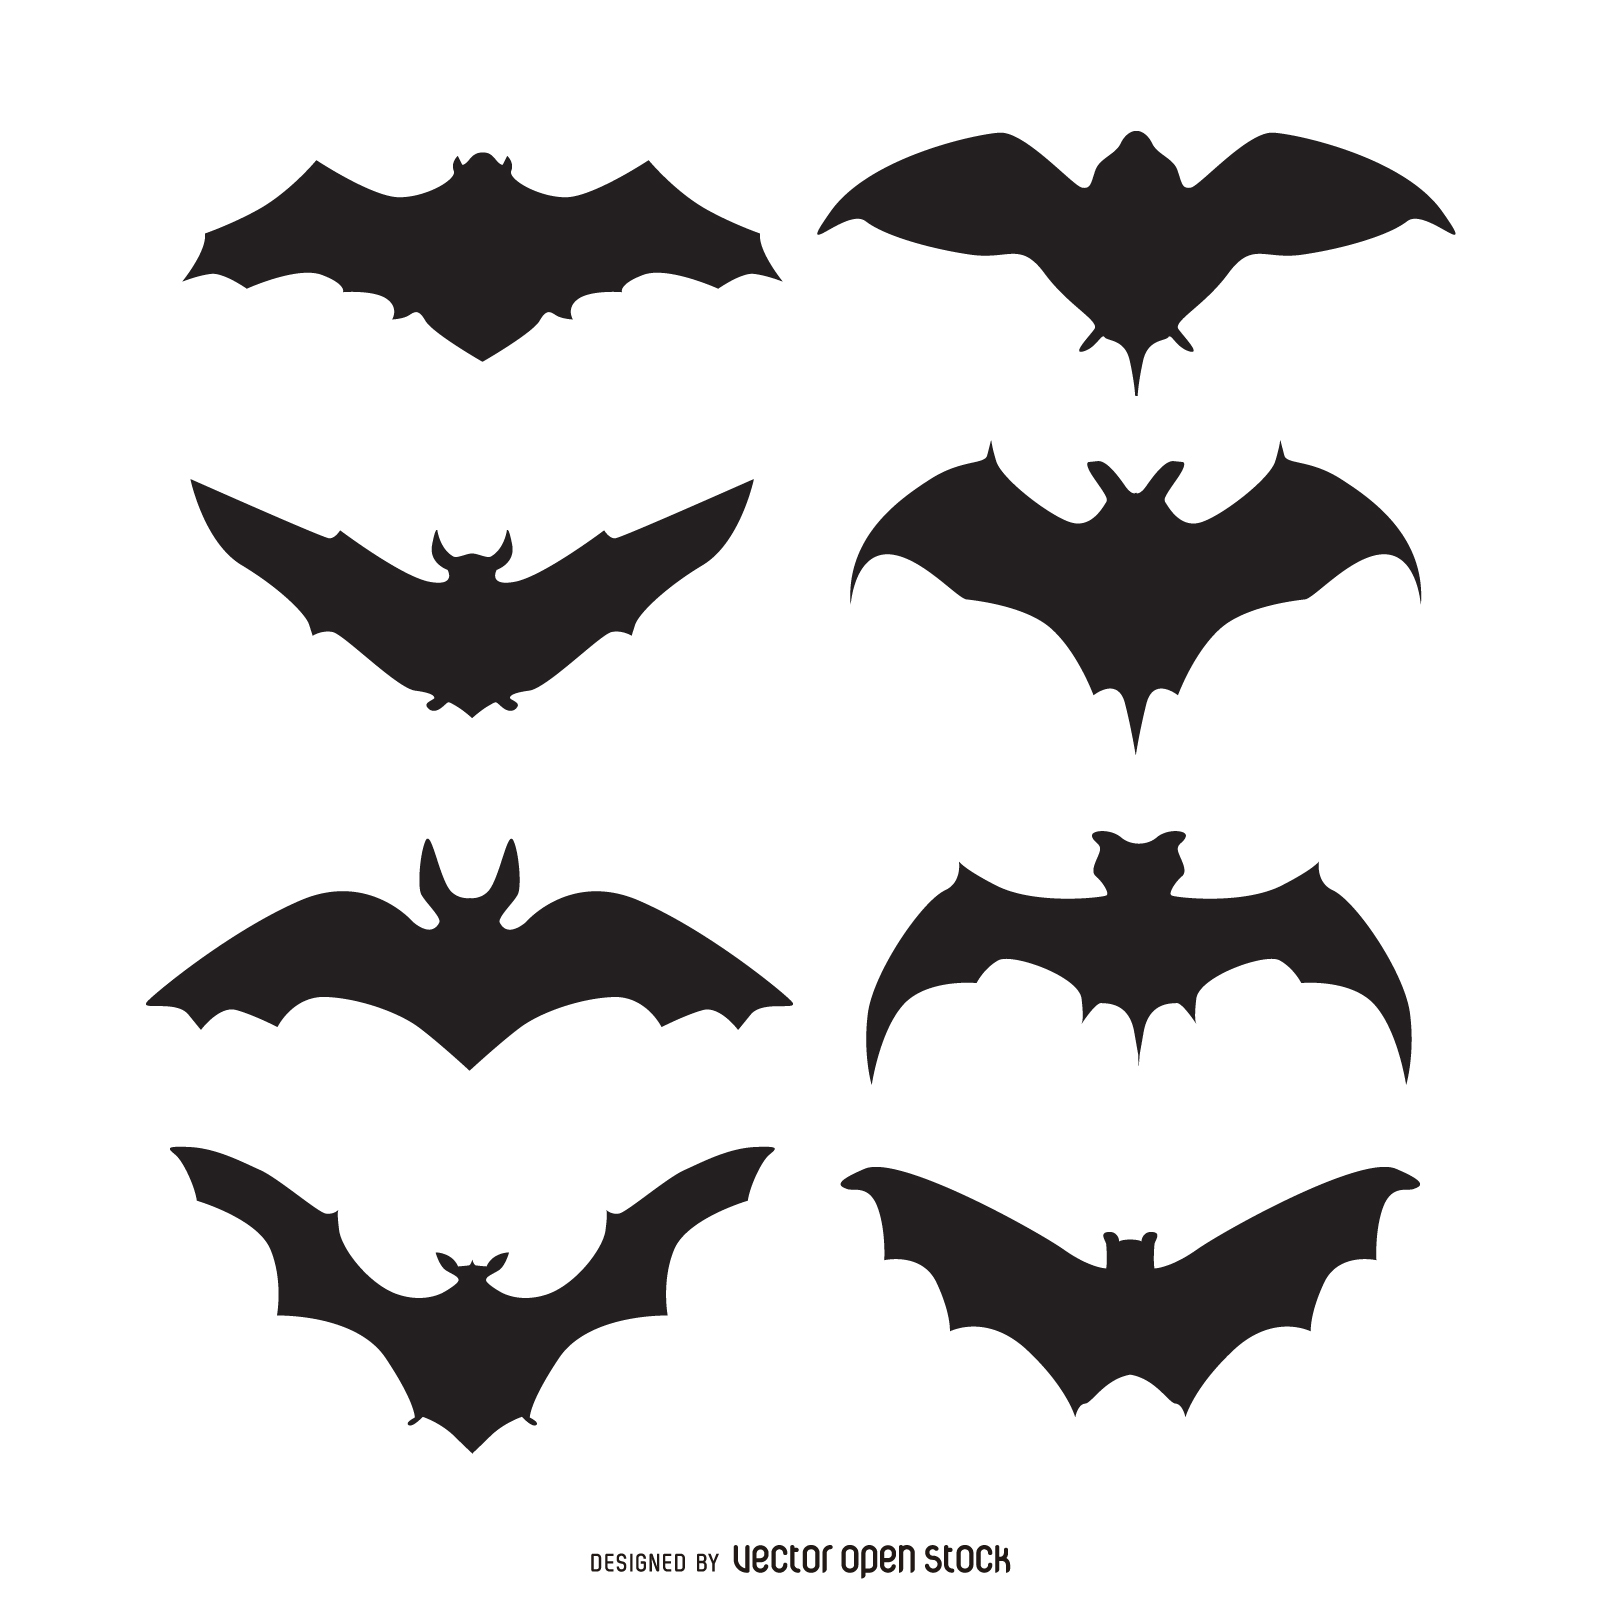 1601x1600 Set Of 8 Bat Silhouettes. Multiple Styles And Shapes To Choose